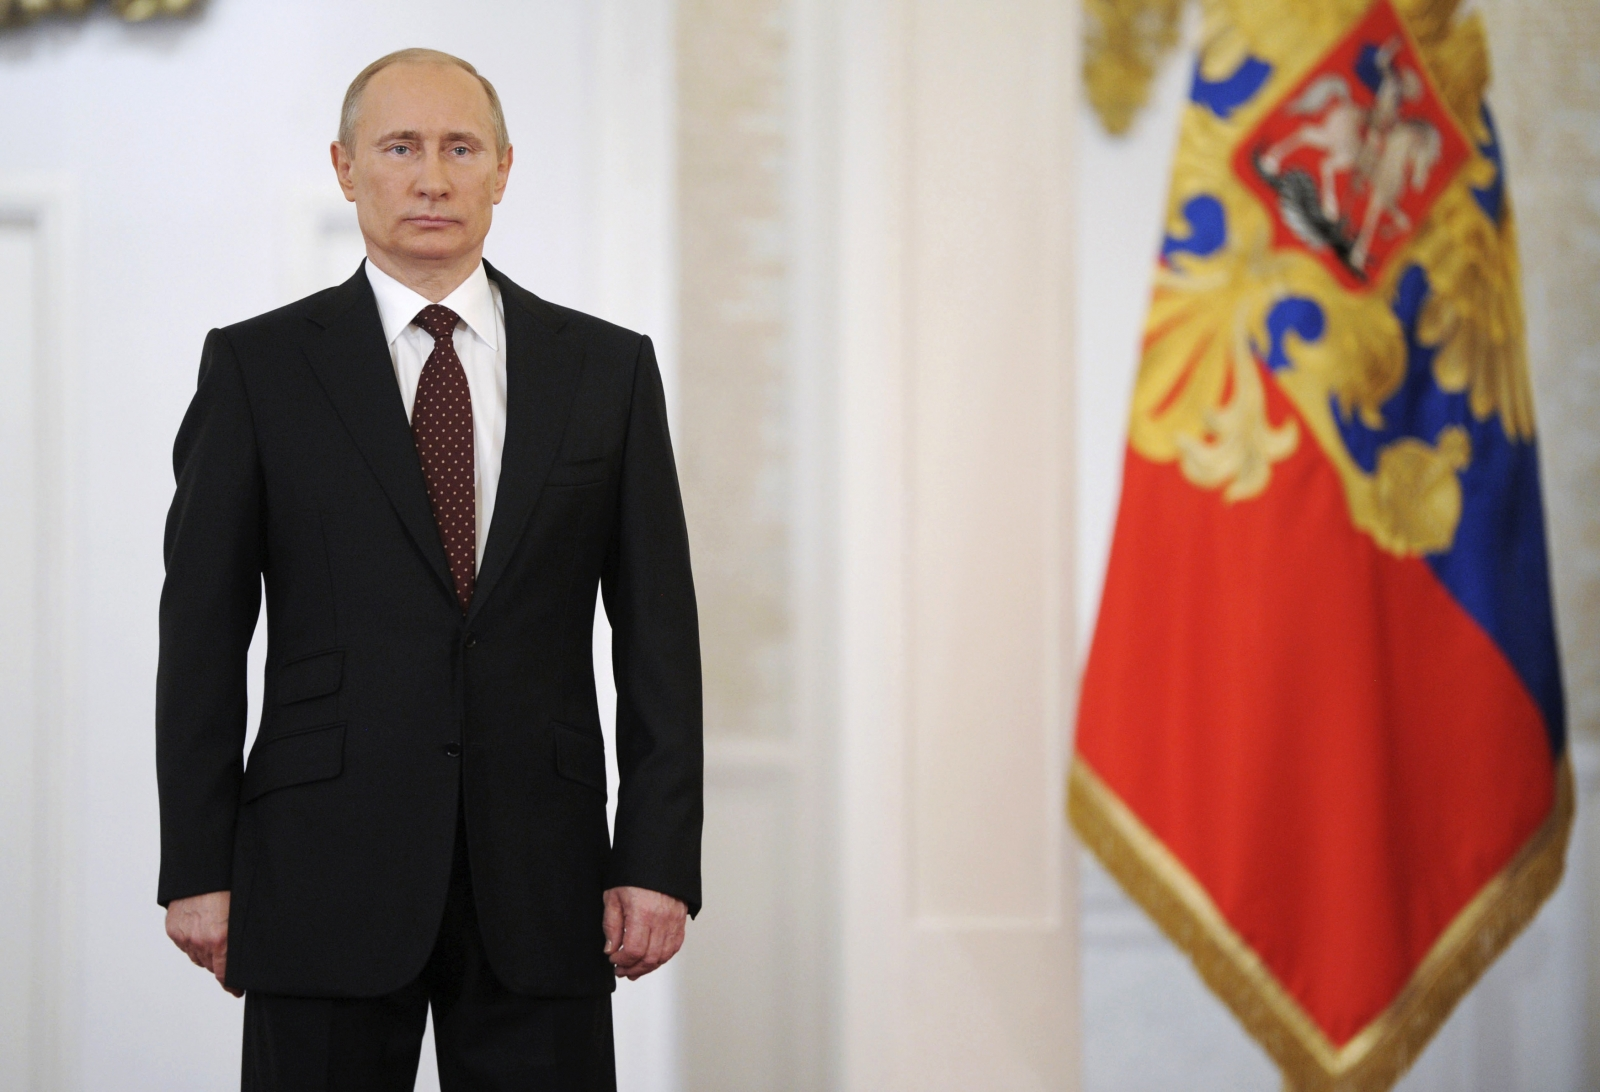 Russian President Vladimir Putin is the most powerful person in the world right now, according to the latest ranking from Forbes.